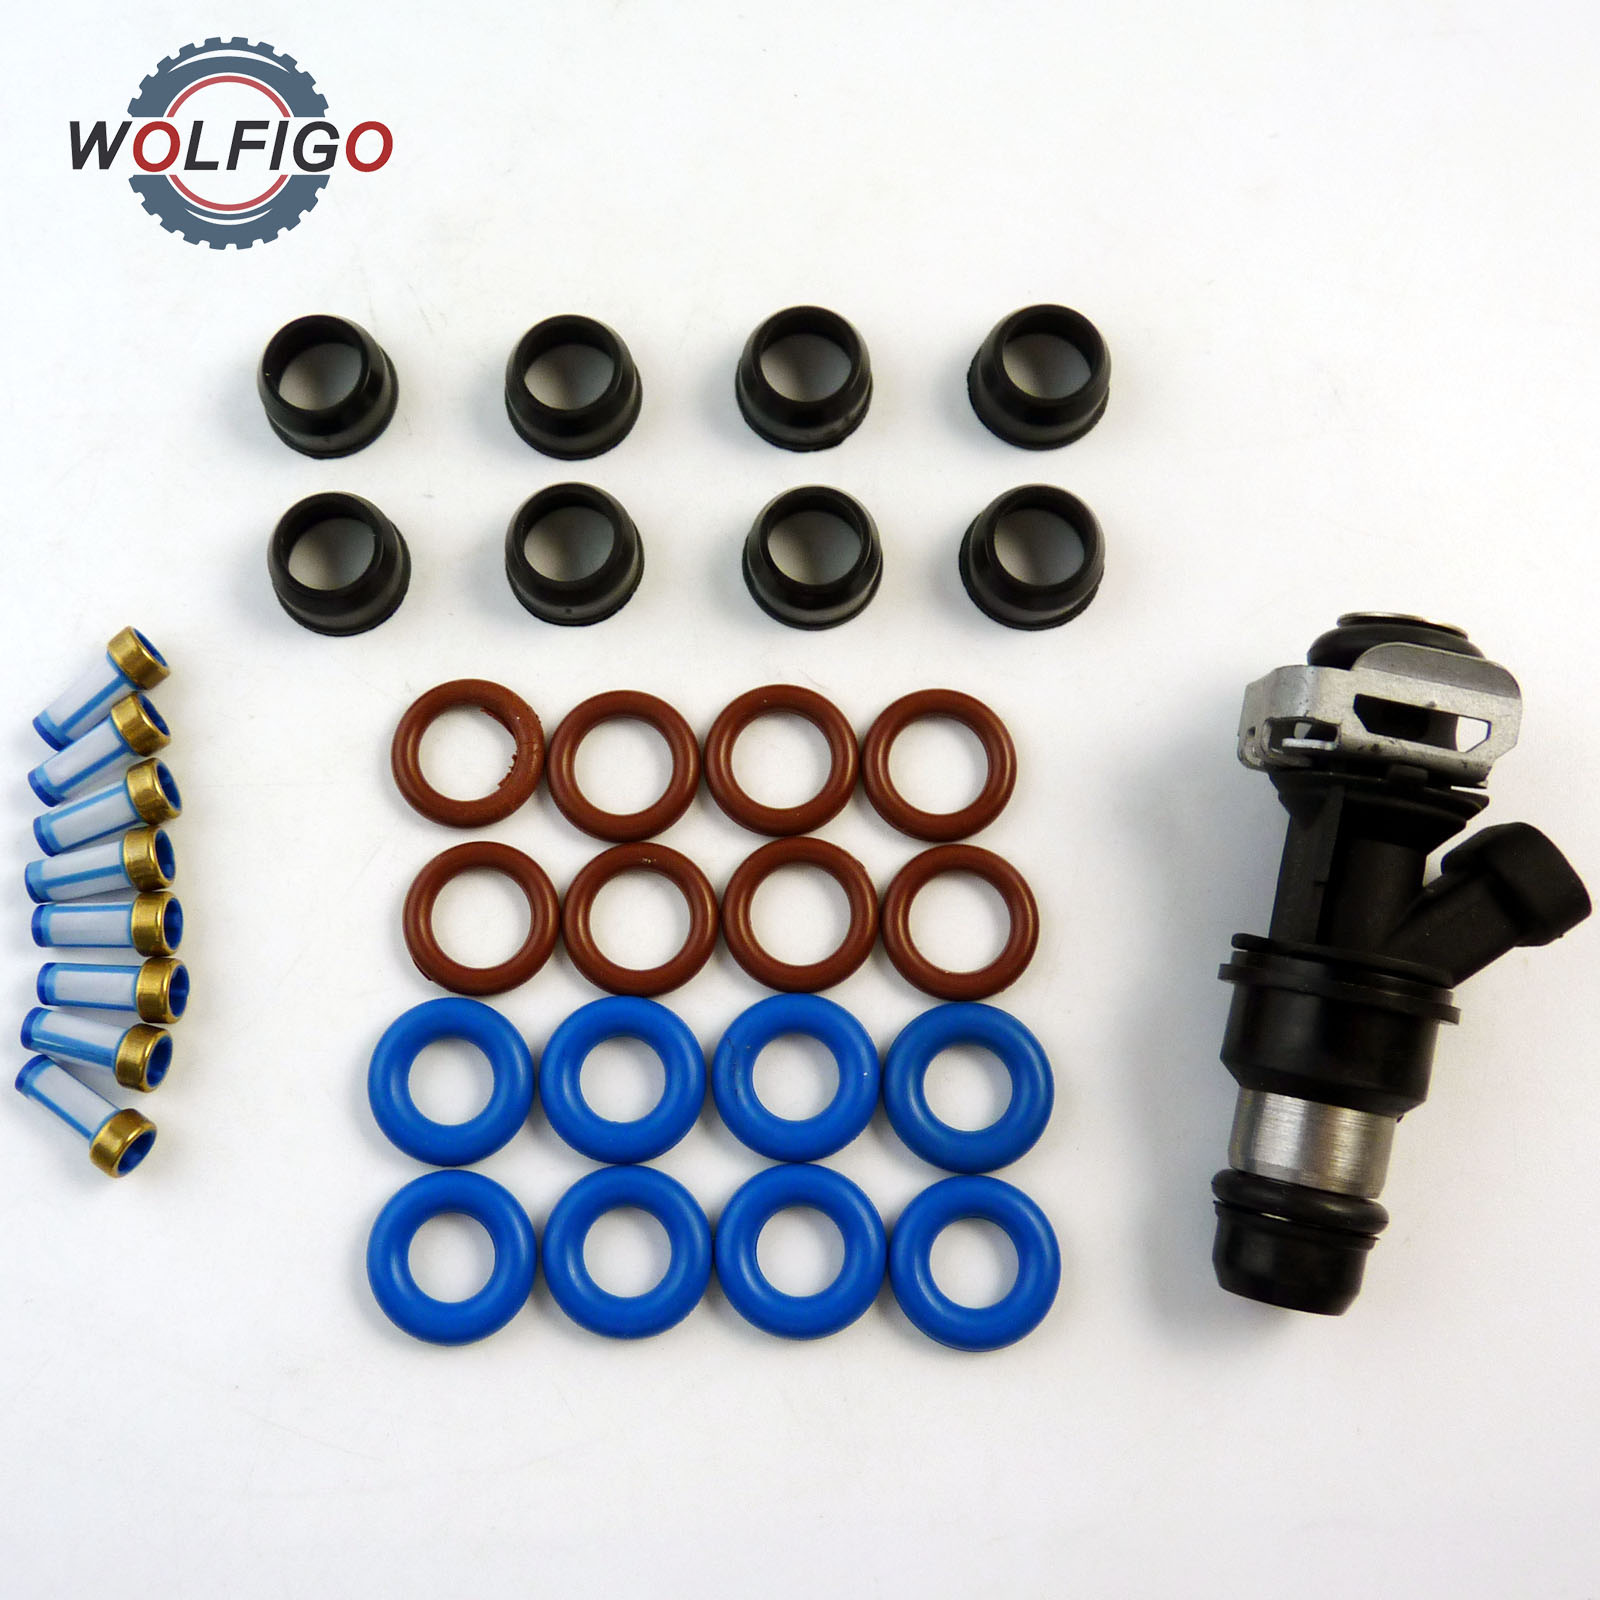 medium resolution of wolfigo fuel injector rebuild kit o rings filters 25317628 17113553 8171136980 for chevrolet truck pintle v8 chevy gmc 4 8 in fuel inject